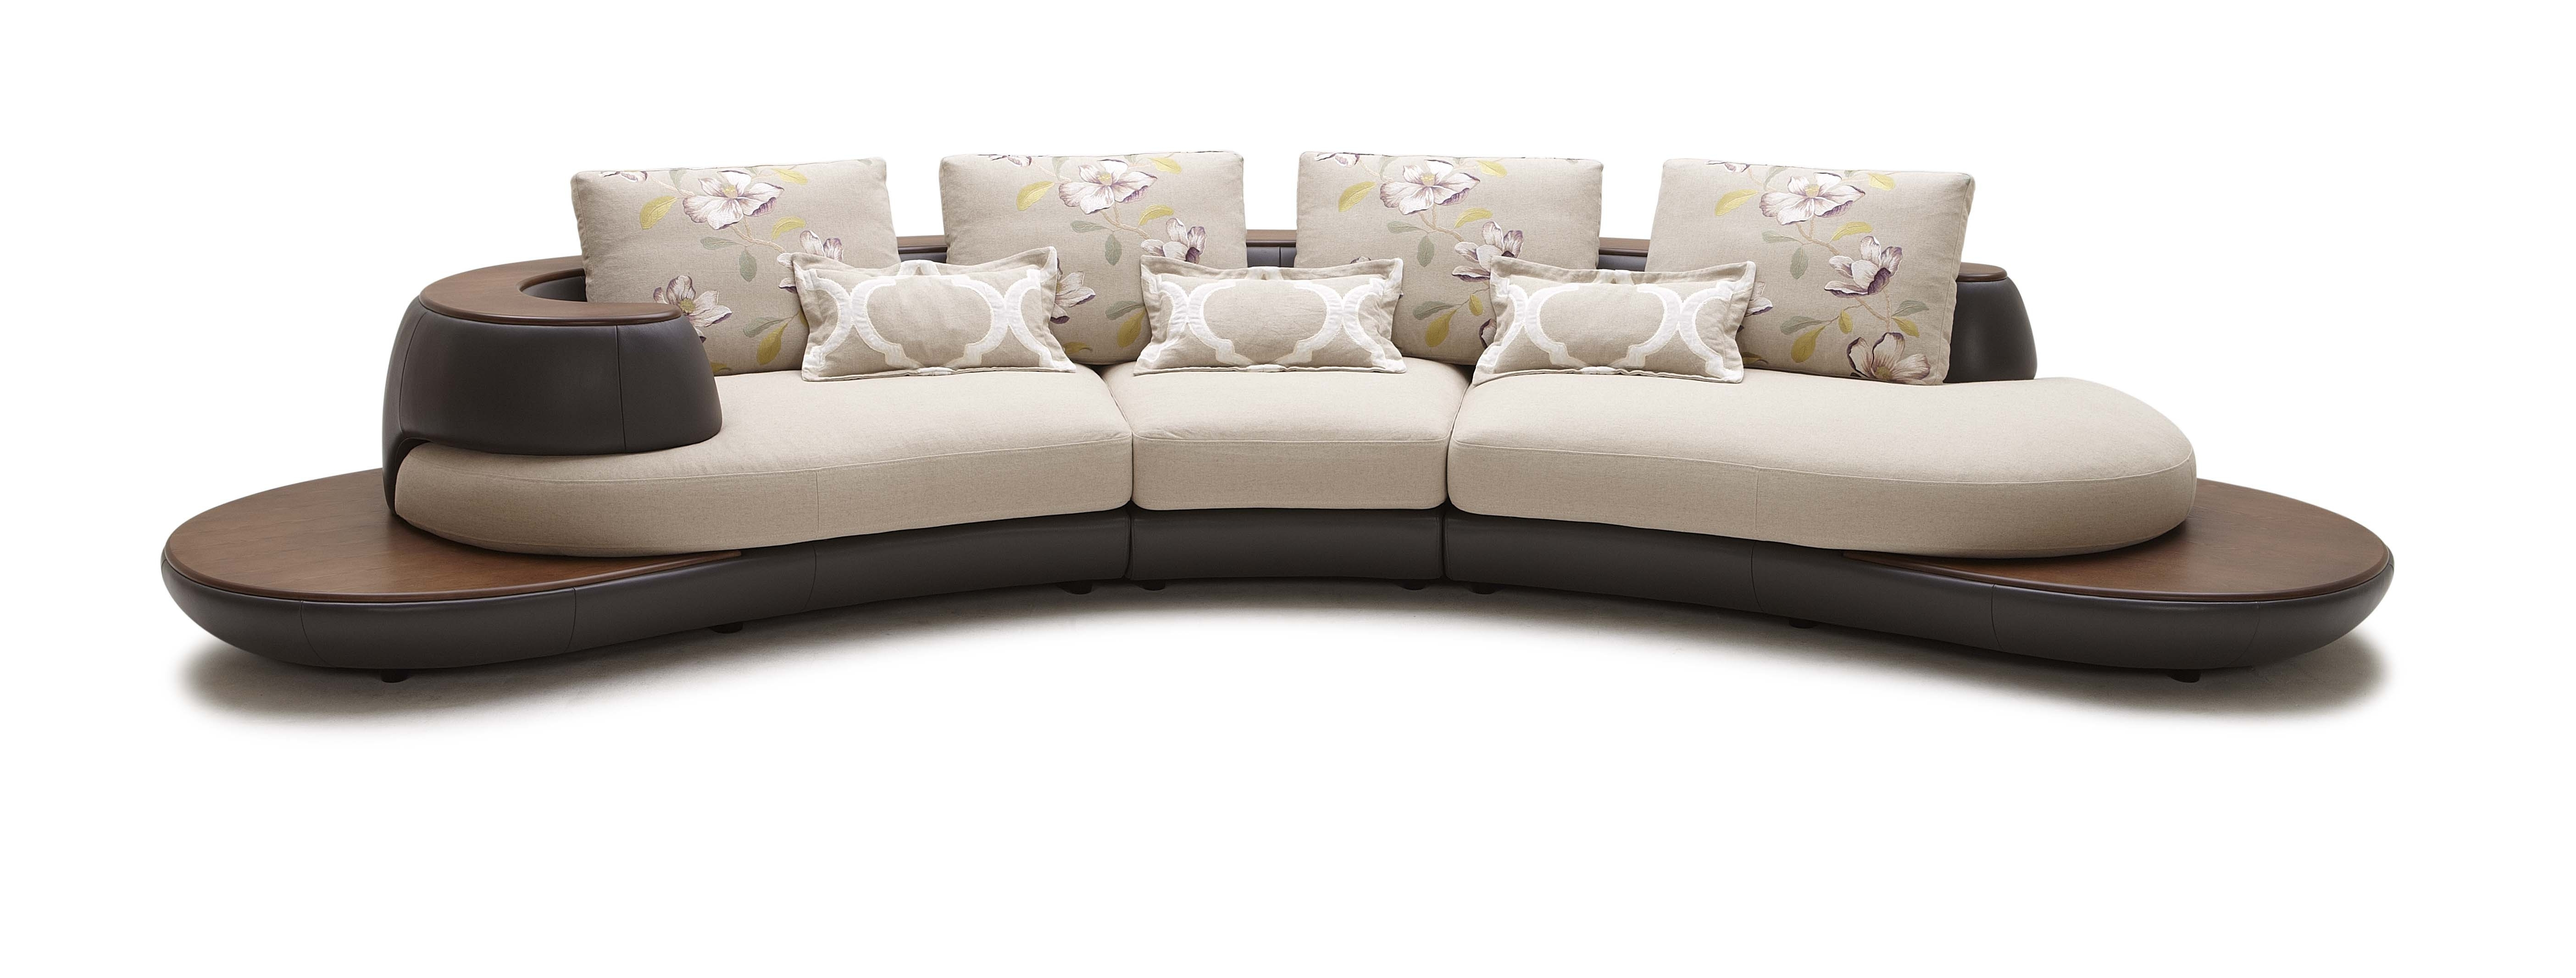 Fabric Sectional Sofas With Chaise – Visionexchange (View 4 of 15)